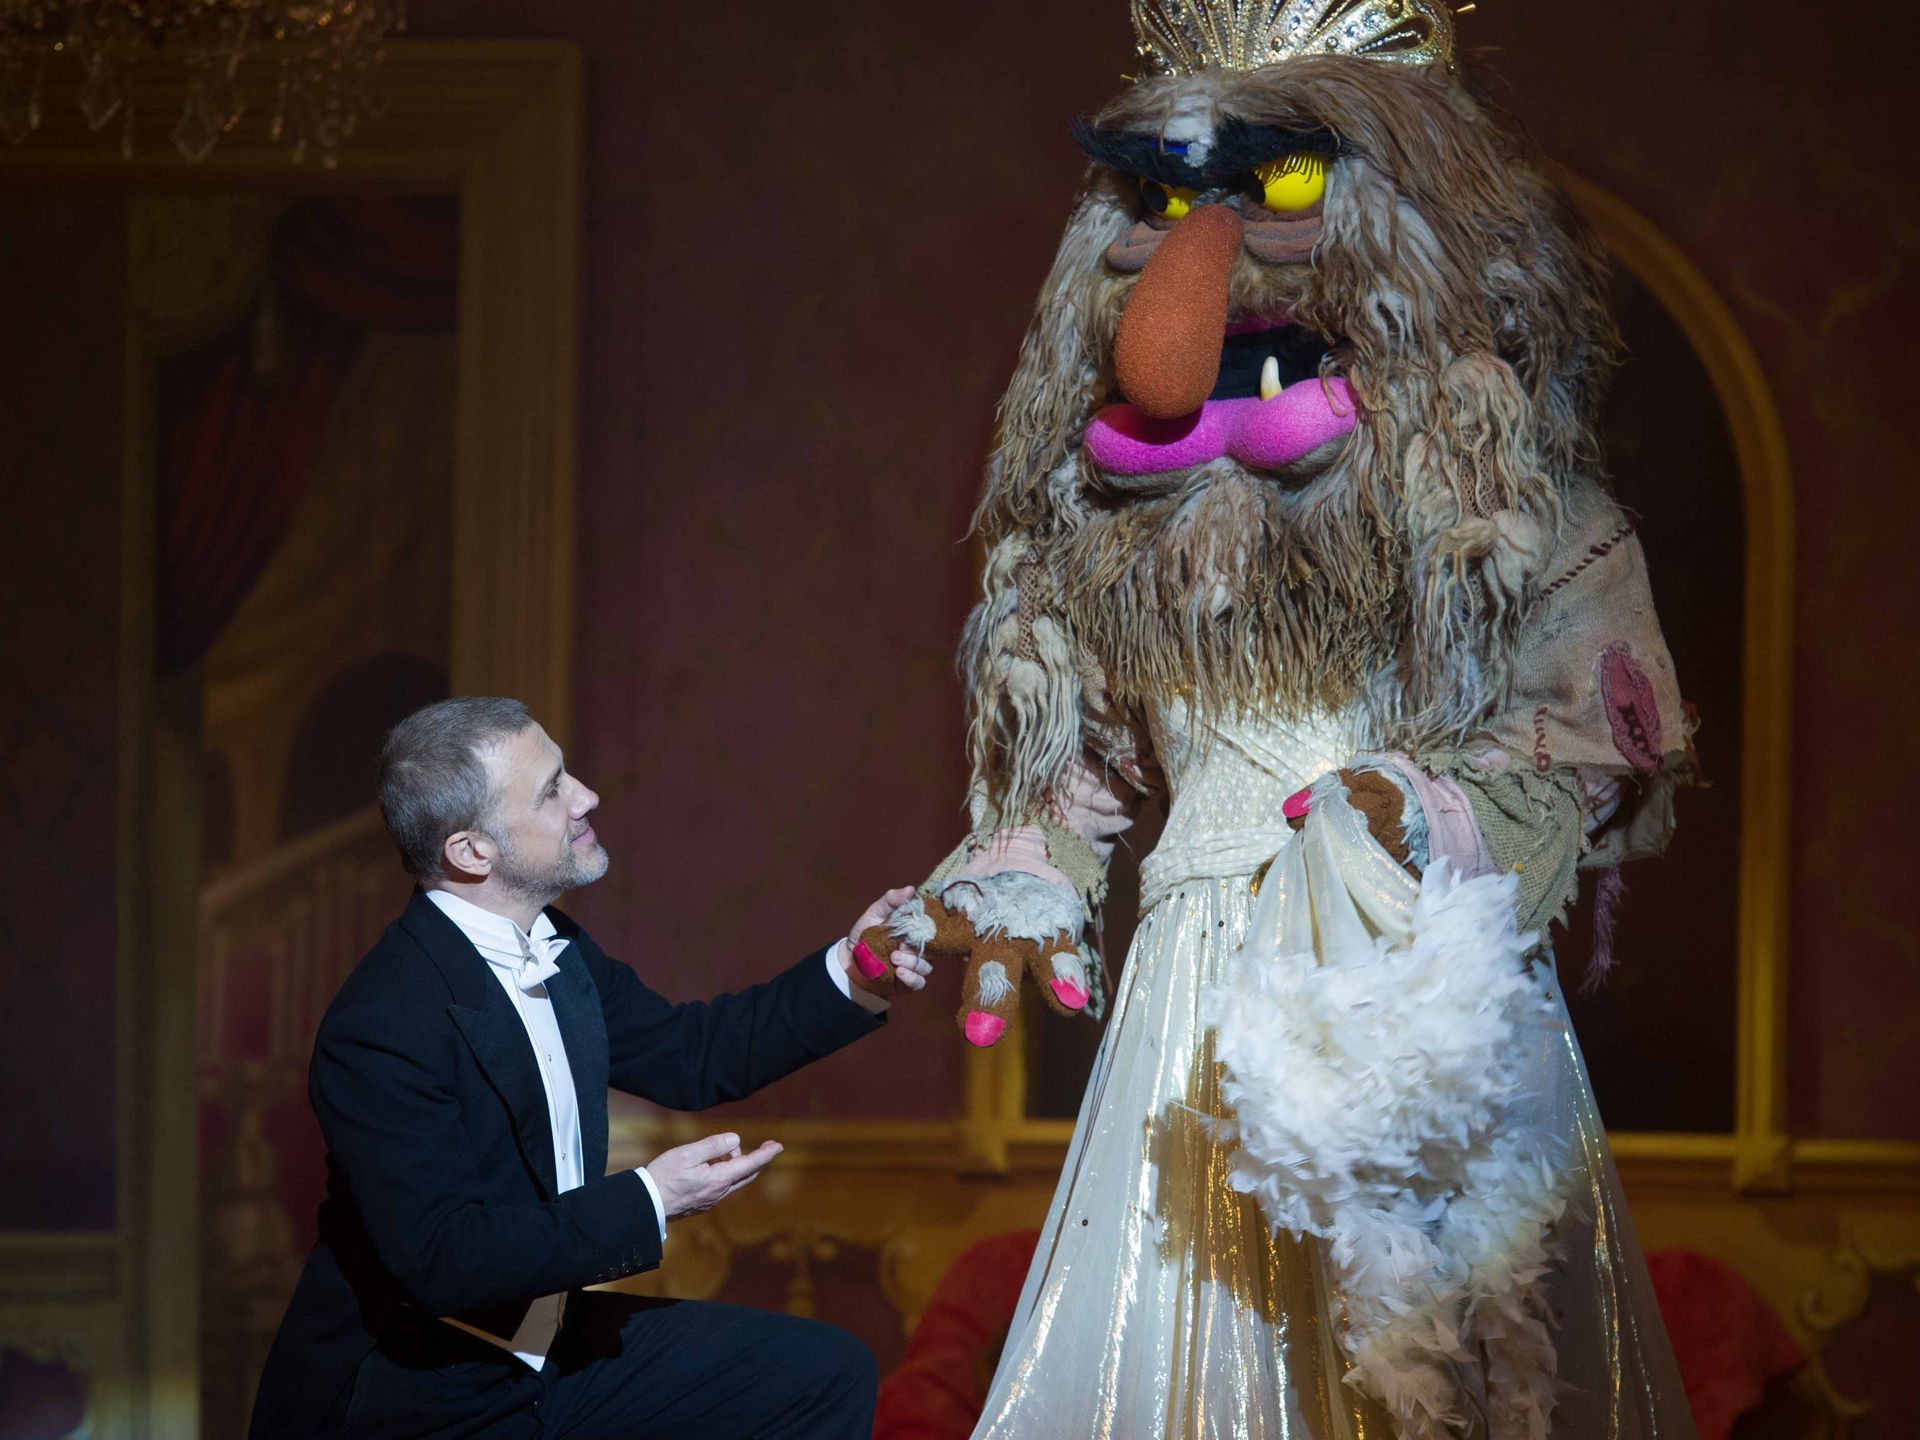 Christoph Waltz, waltzing with Sweetums in Muppets Most Wanted.